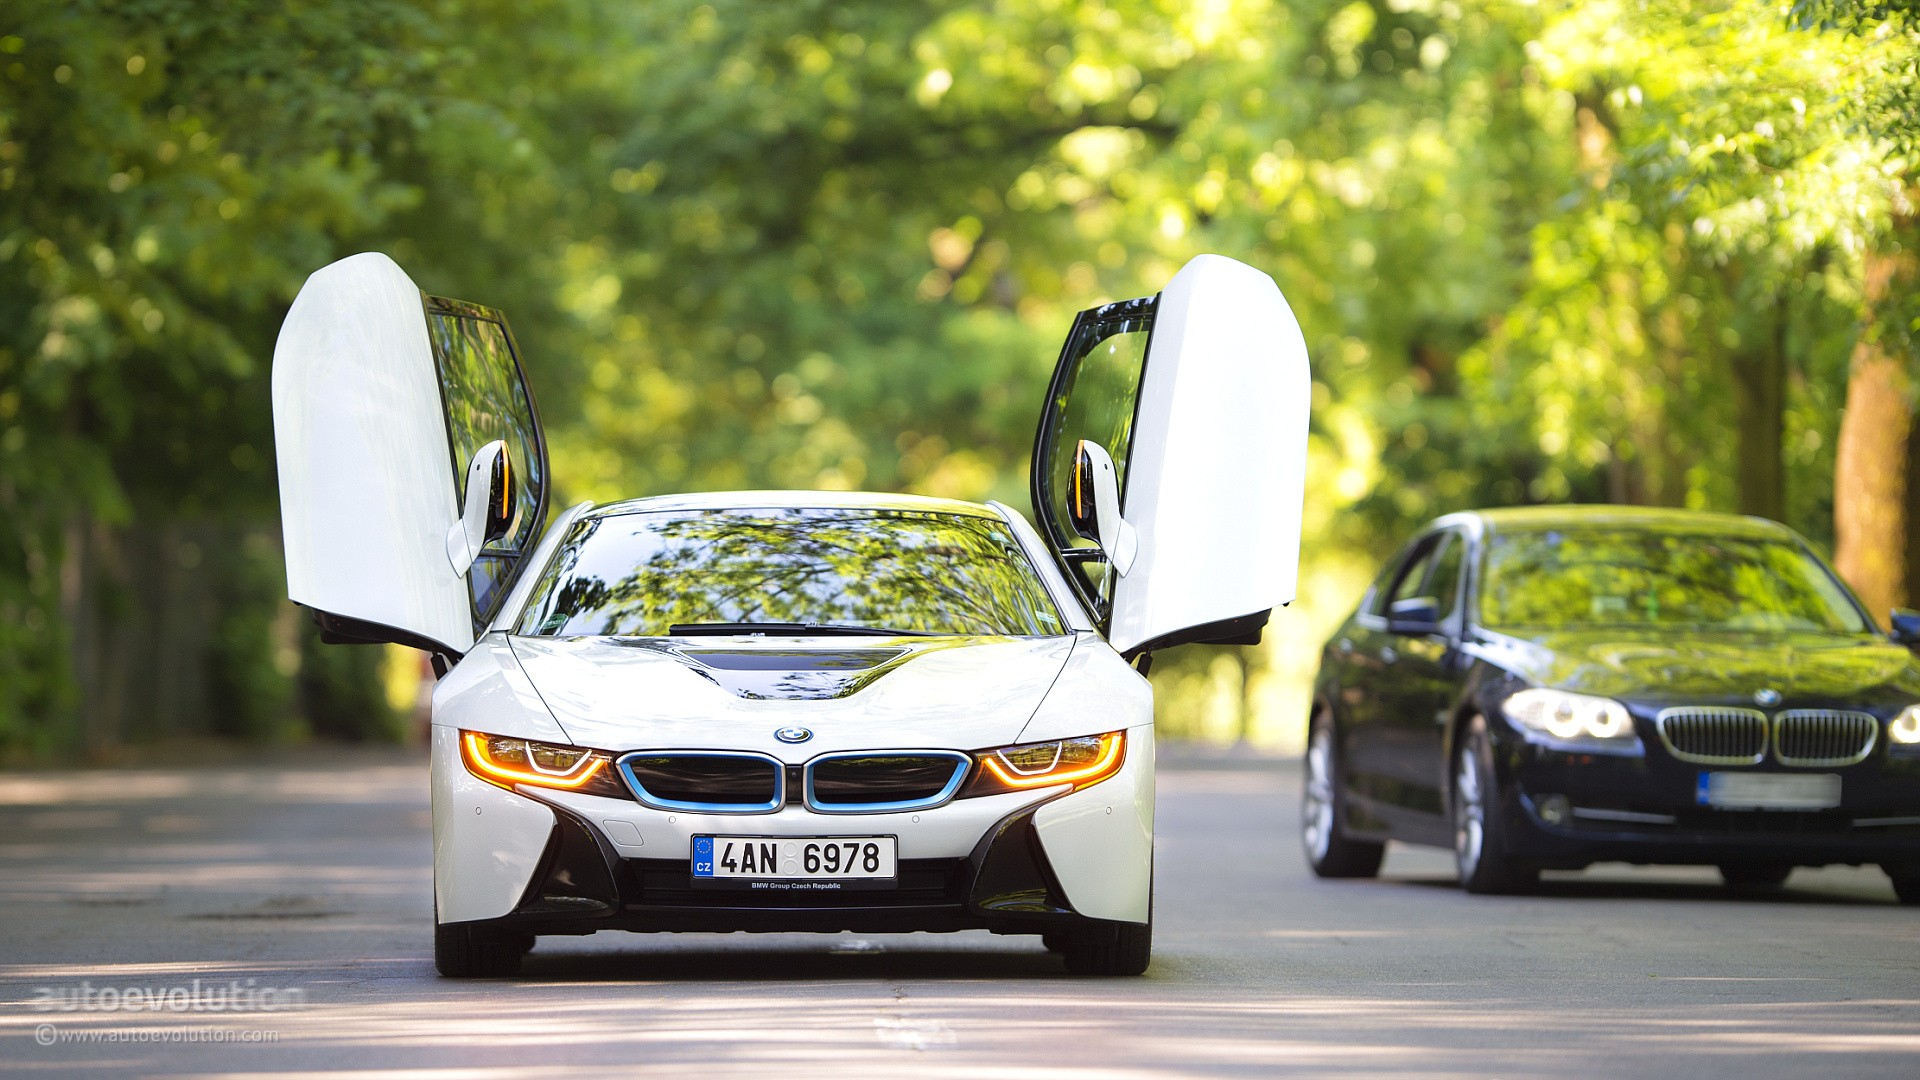 How To Bmw I8 The Hd Wallpaper Guide Autoevolution